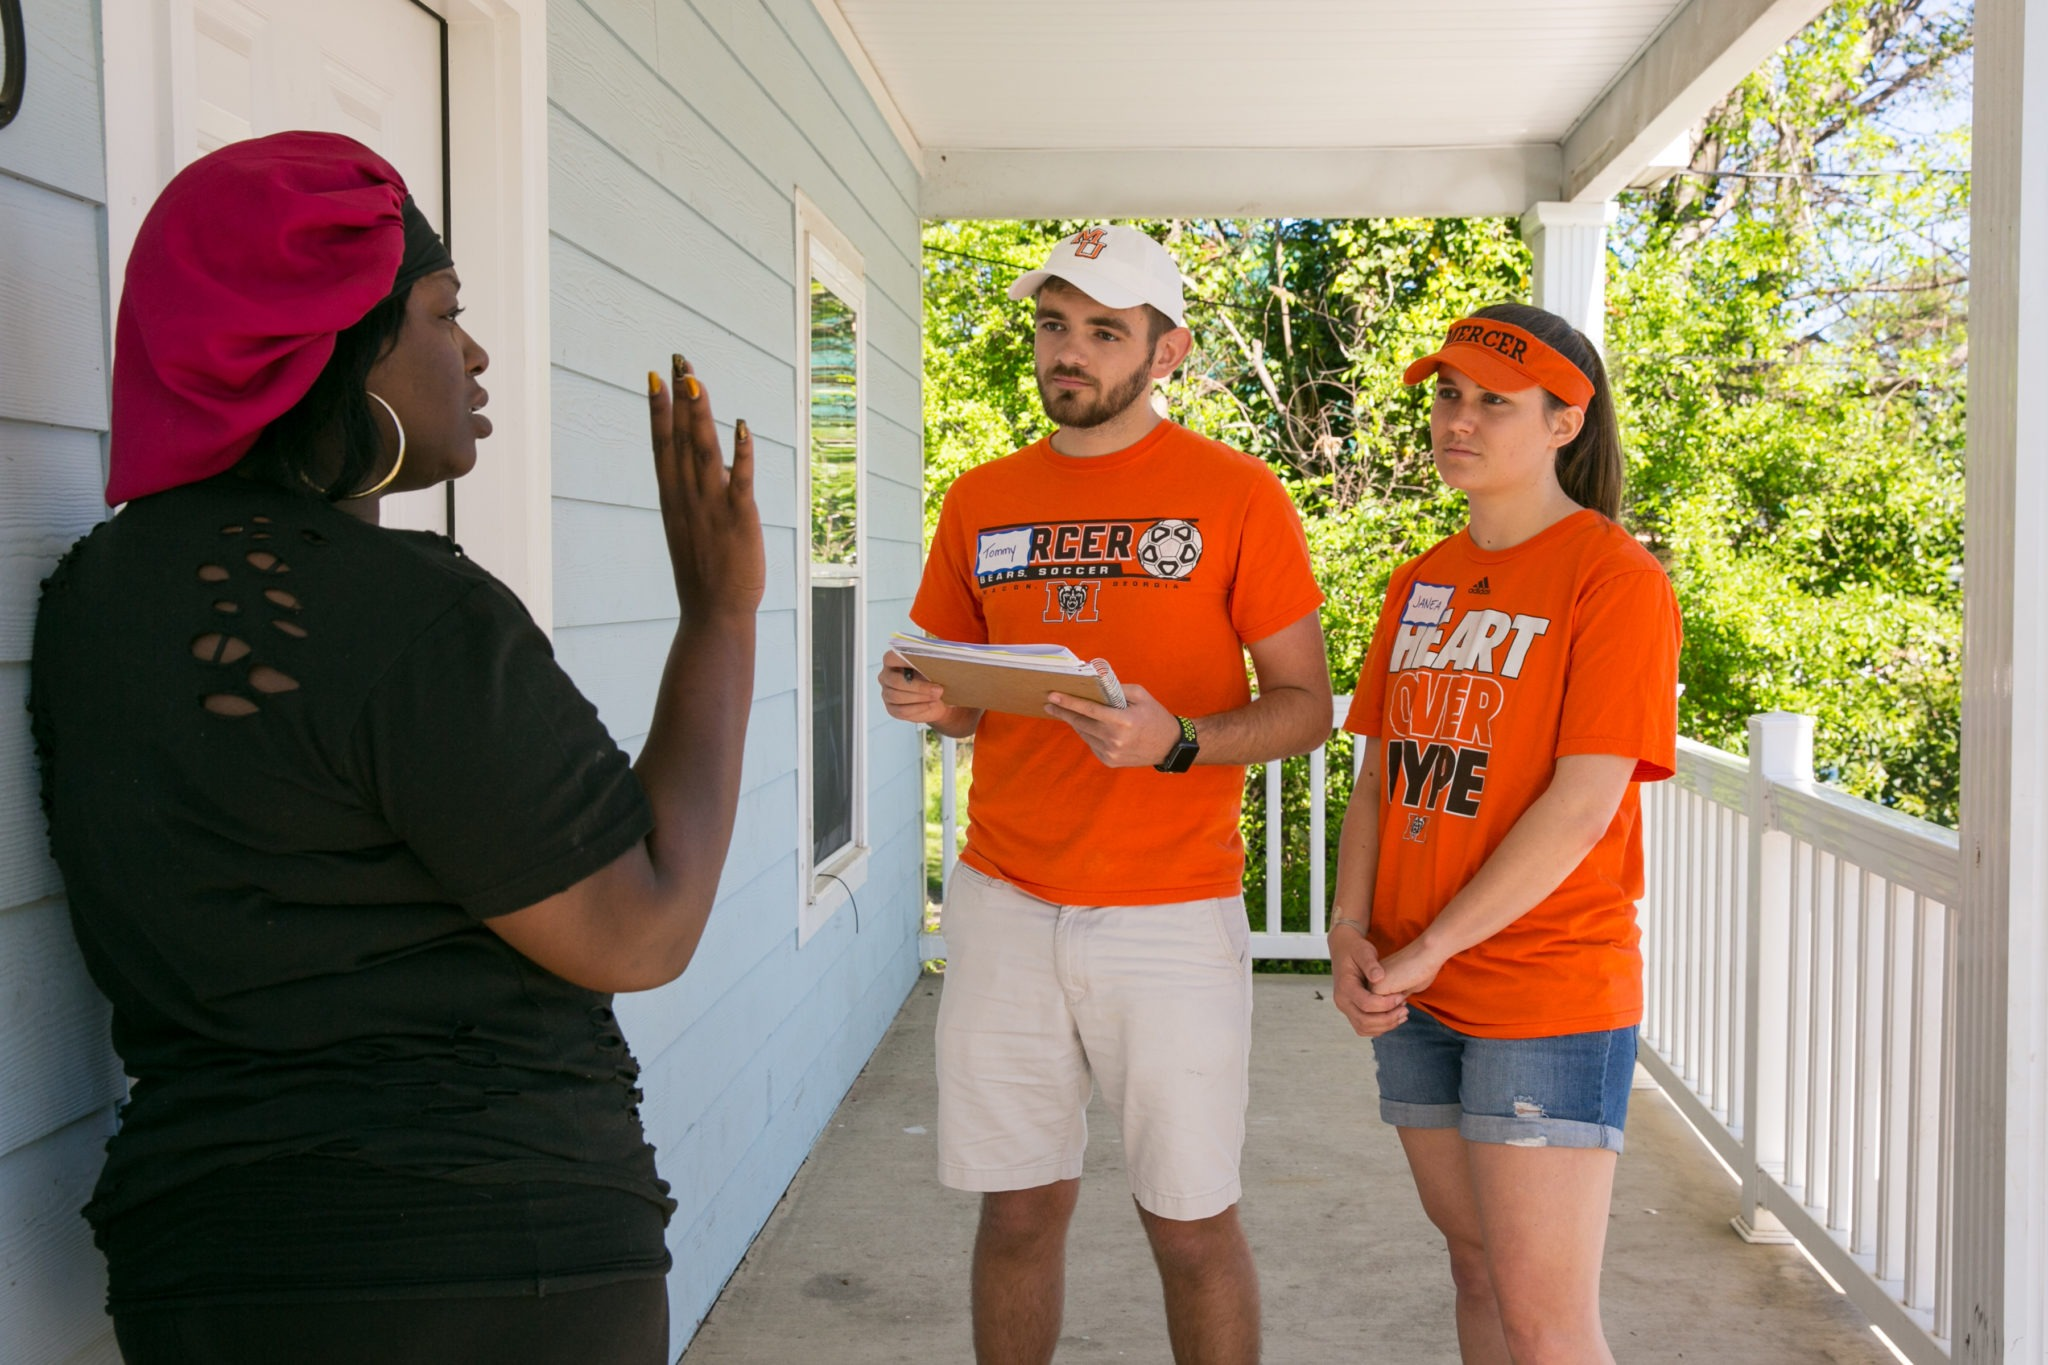 Mercer University students talk to a woman in the community as part of the 2017 Mercer Service Scholars program.